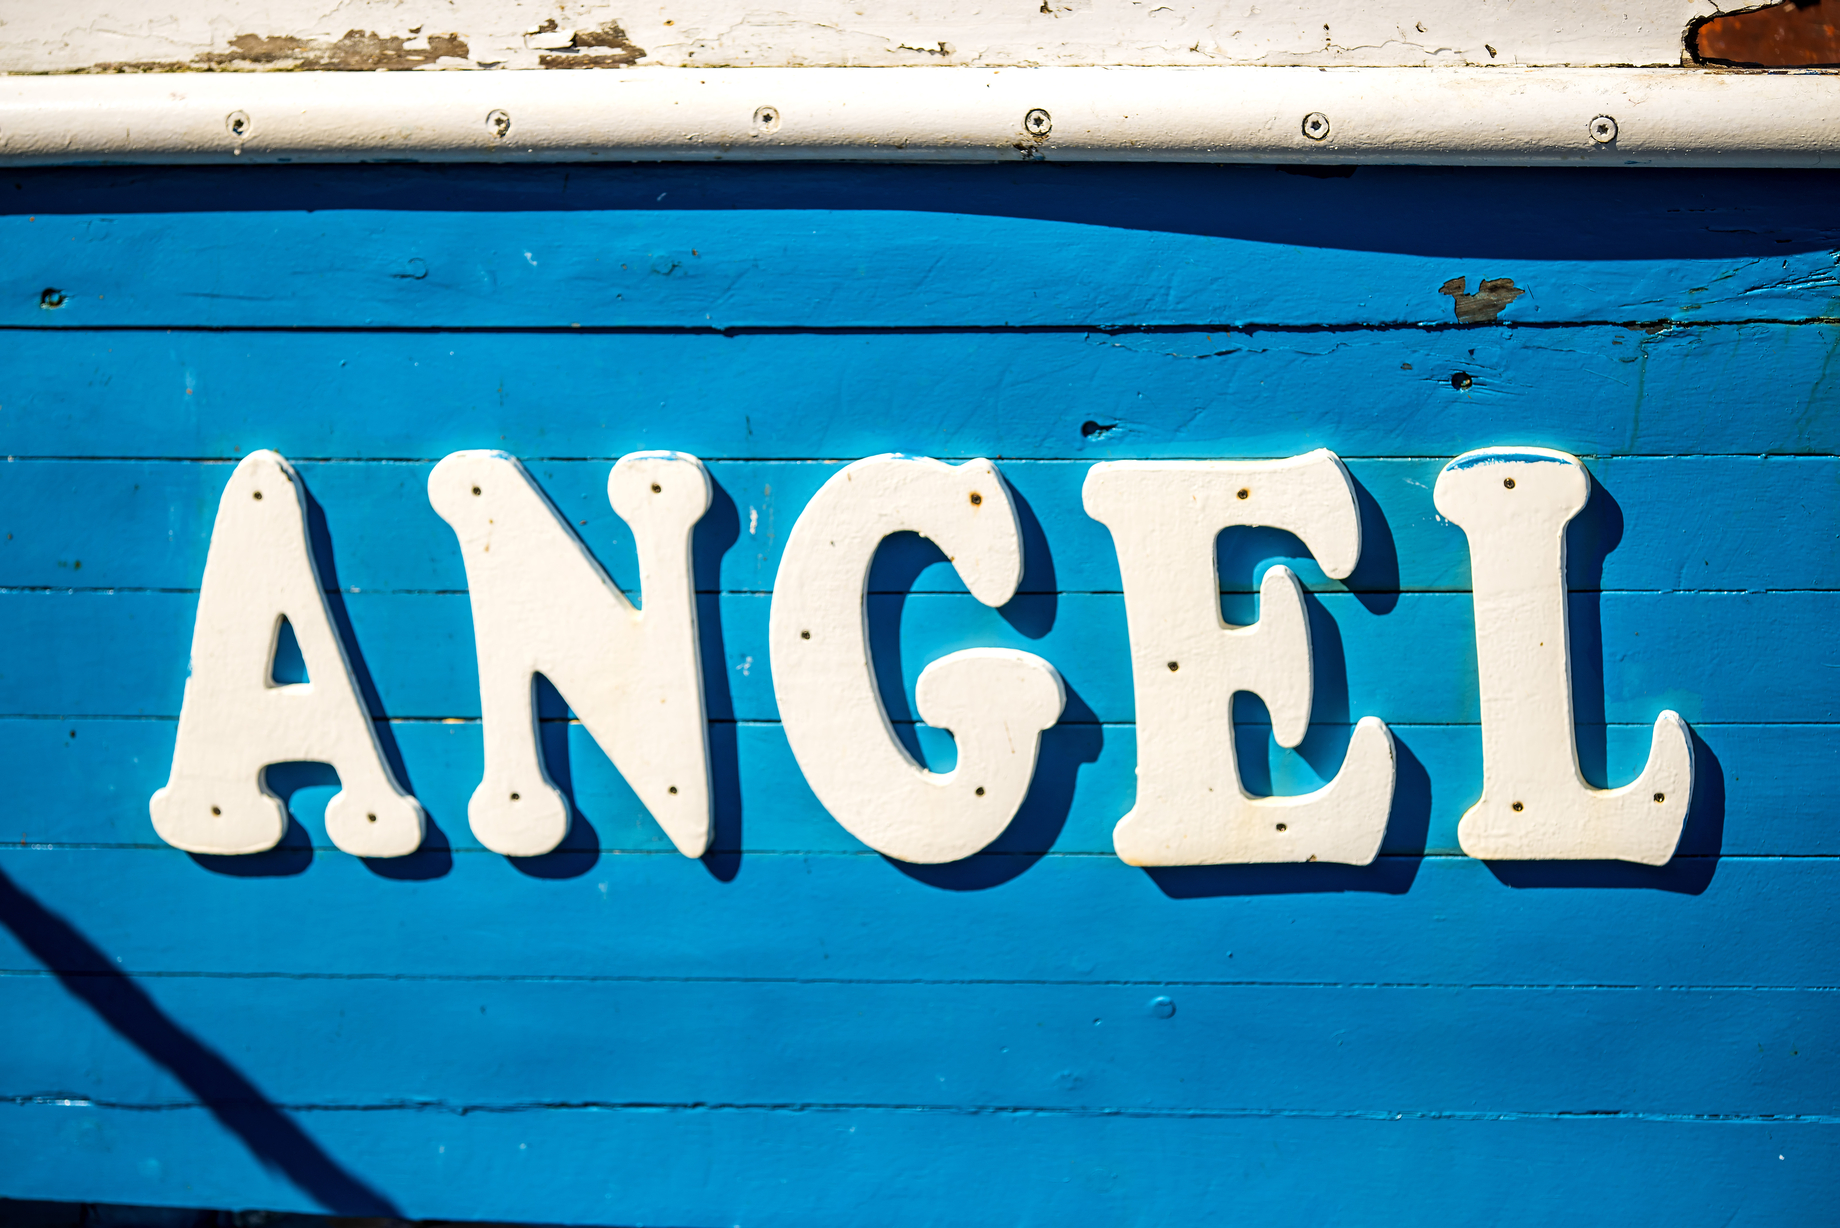 Angel the name of a boat